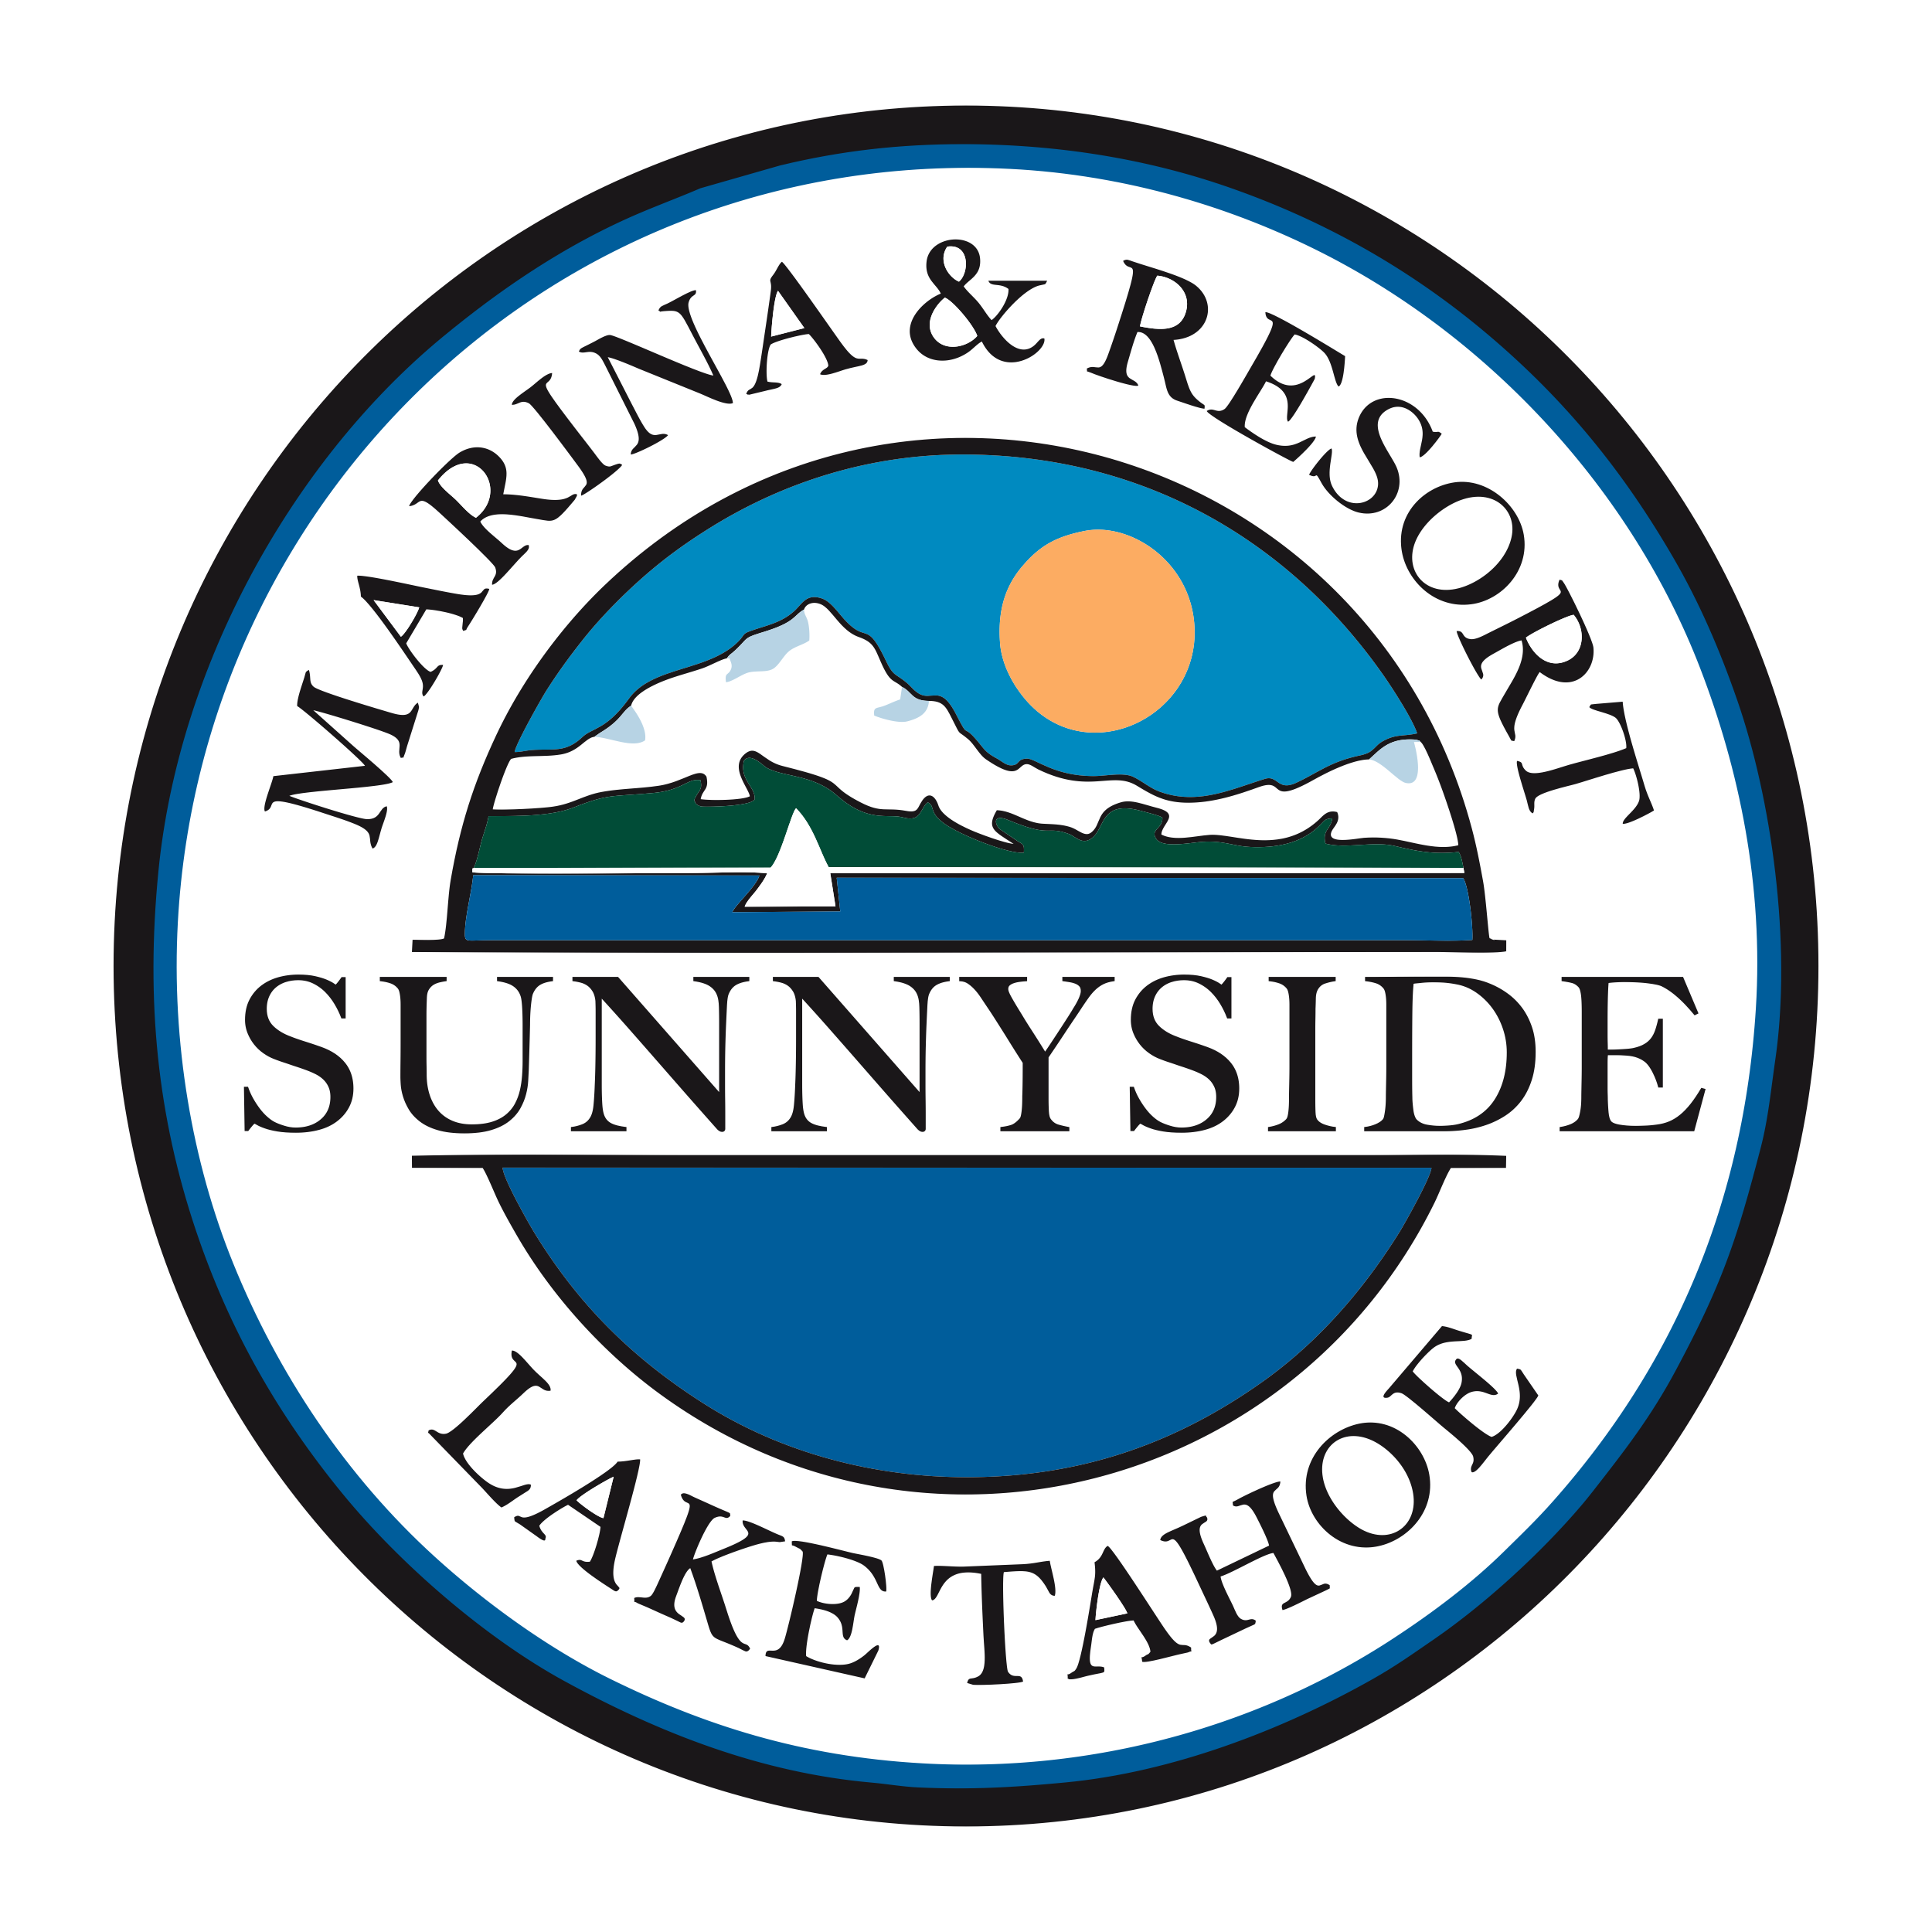 Sunnyside Marina & Water Sports